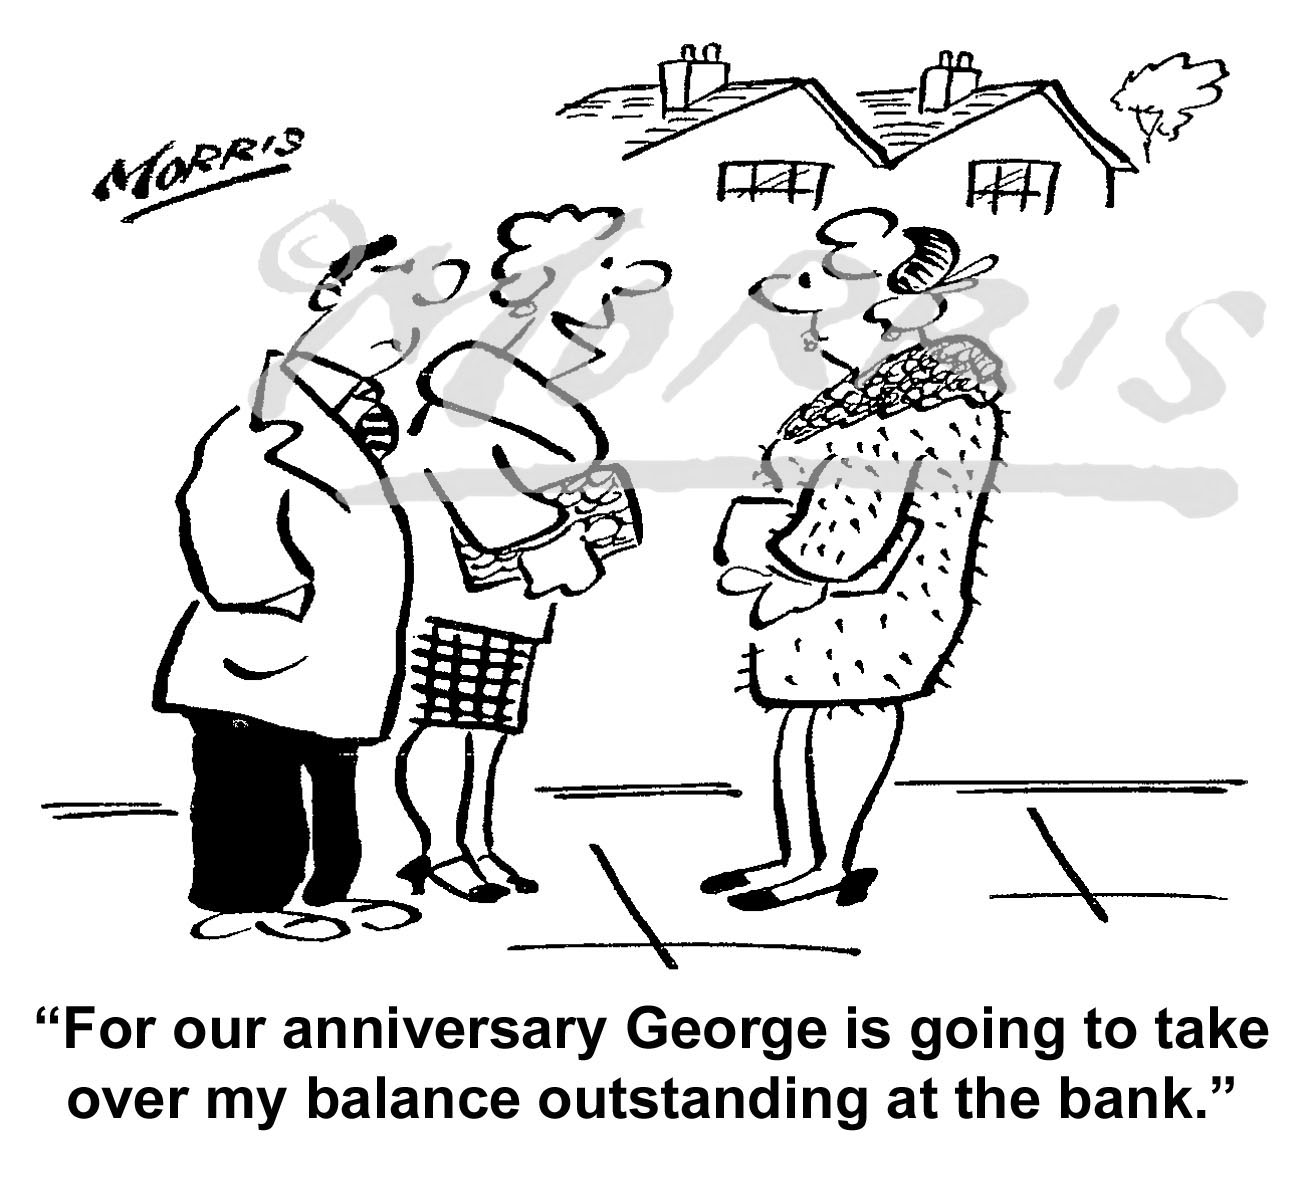 Bank balance cartoon – Ref: 6169bw